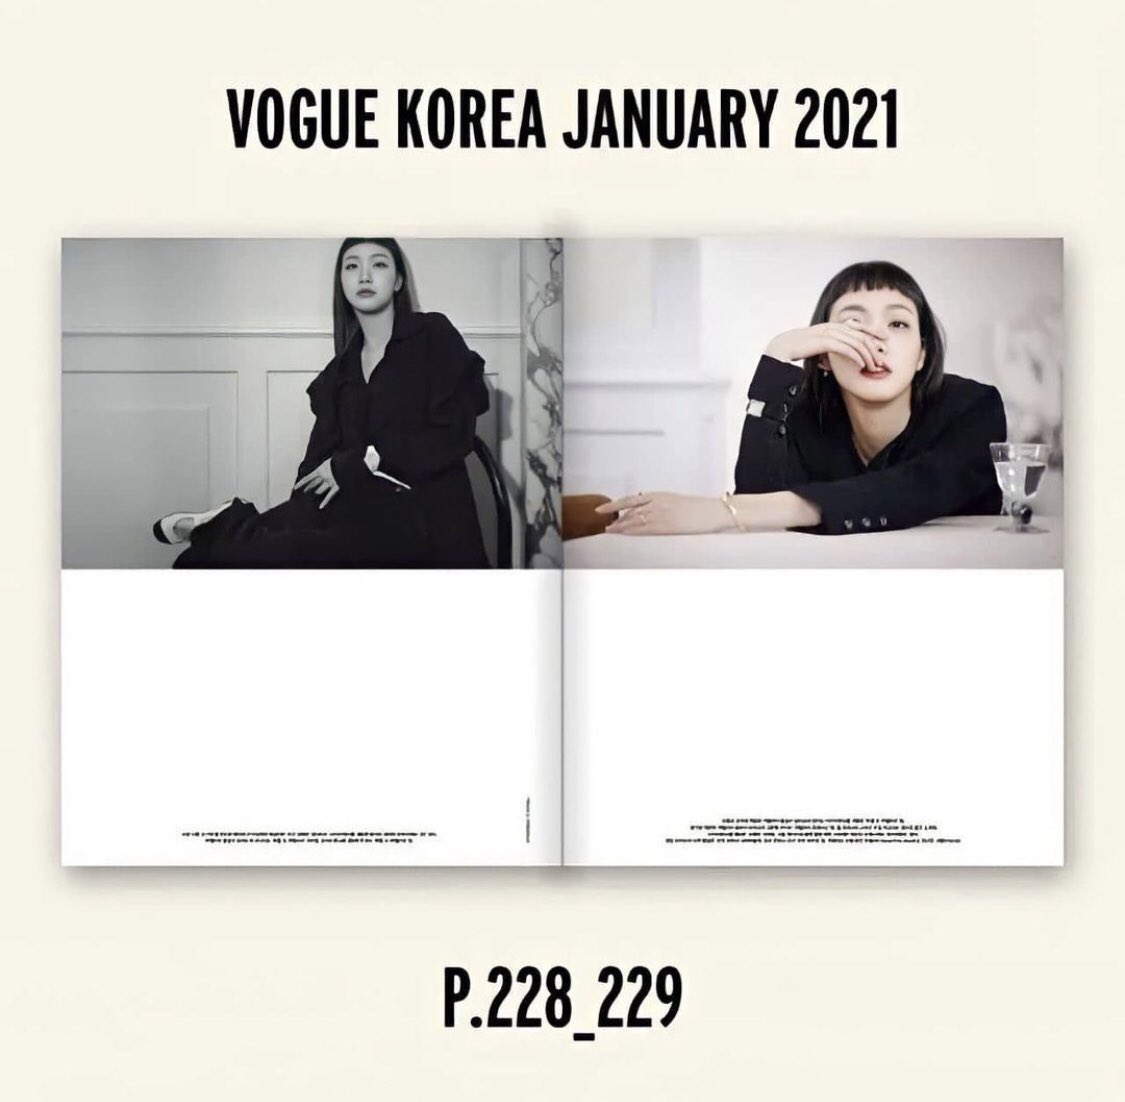 #KimGoEun will be featured on the first issue of @VogueKorea in 2021 for @CHANEL advertisement🖤  More photos:  #김고은